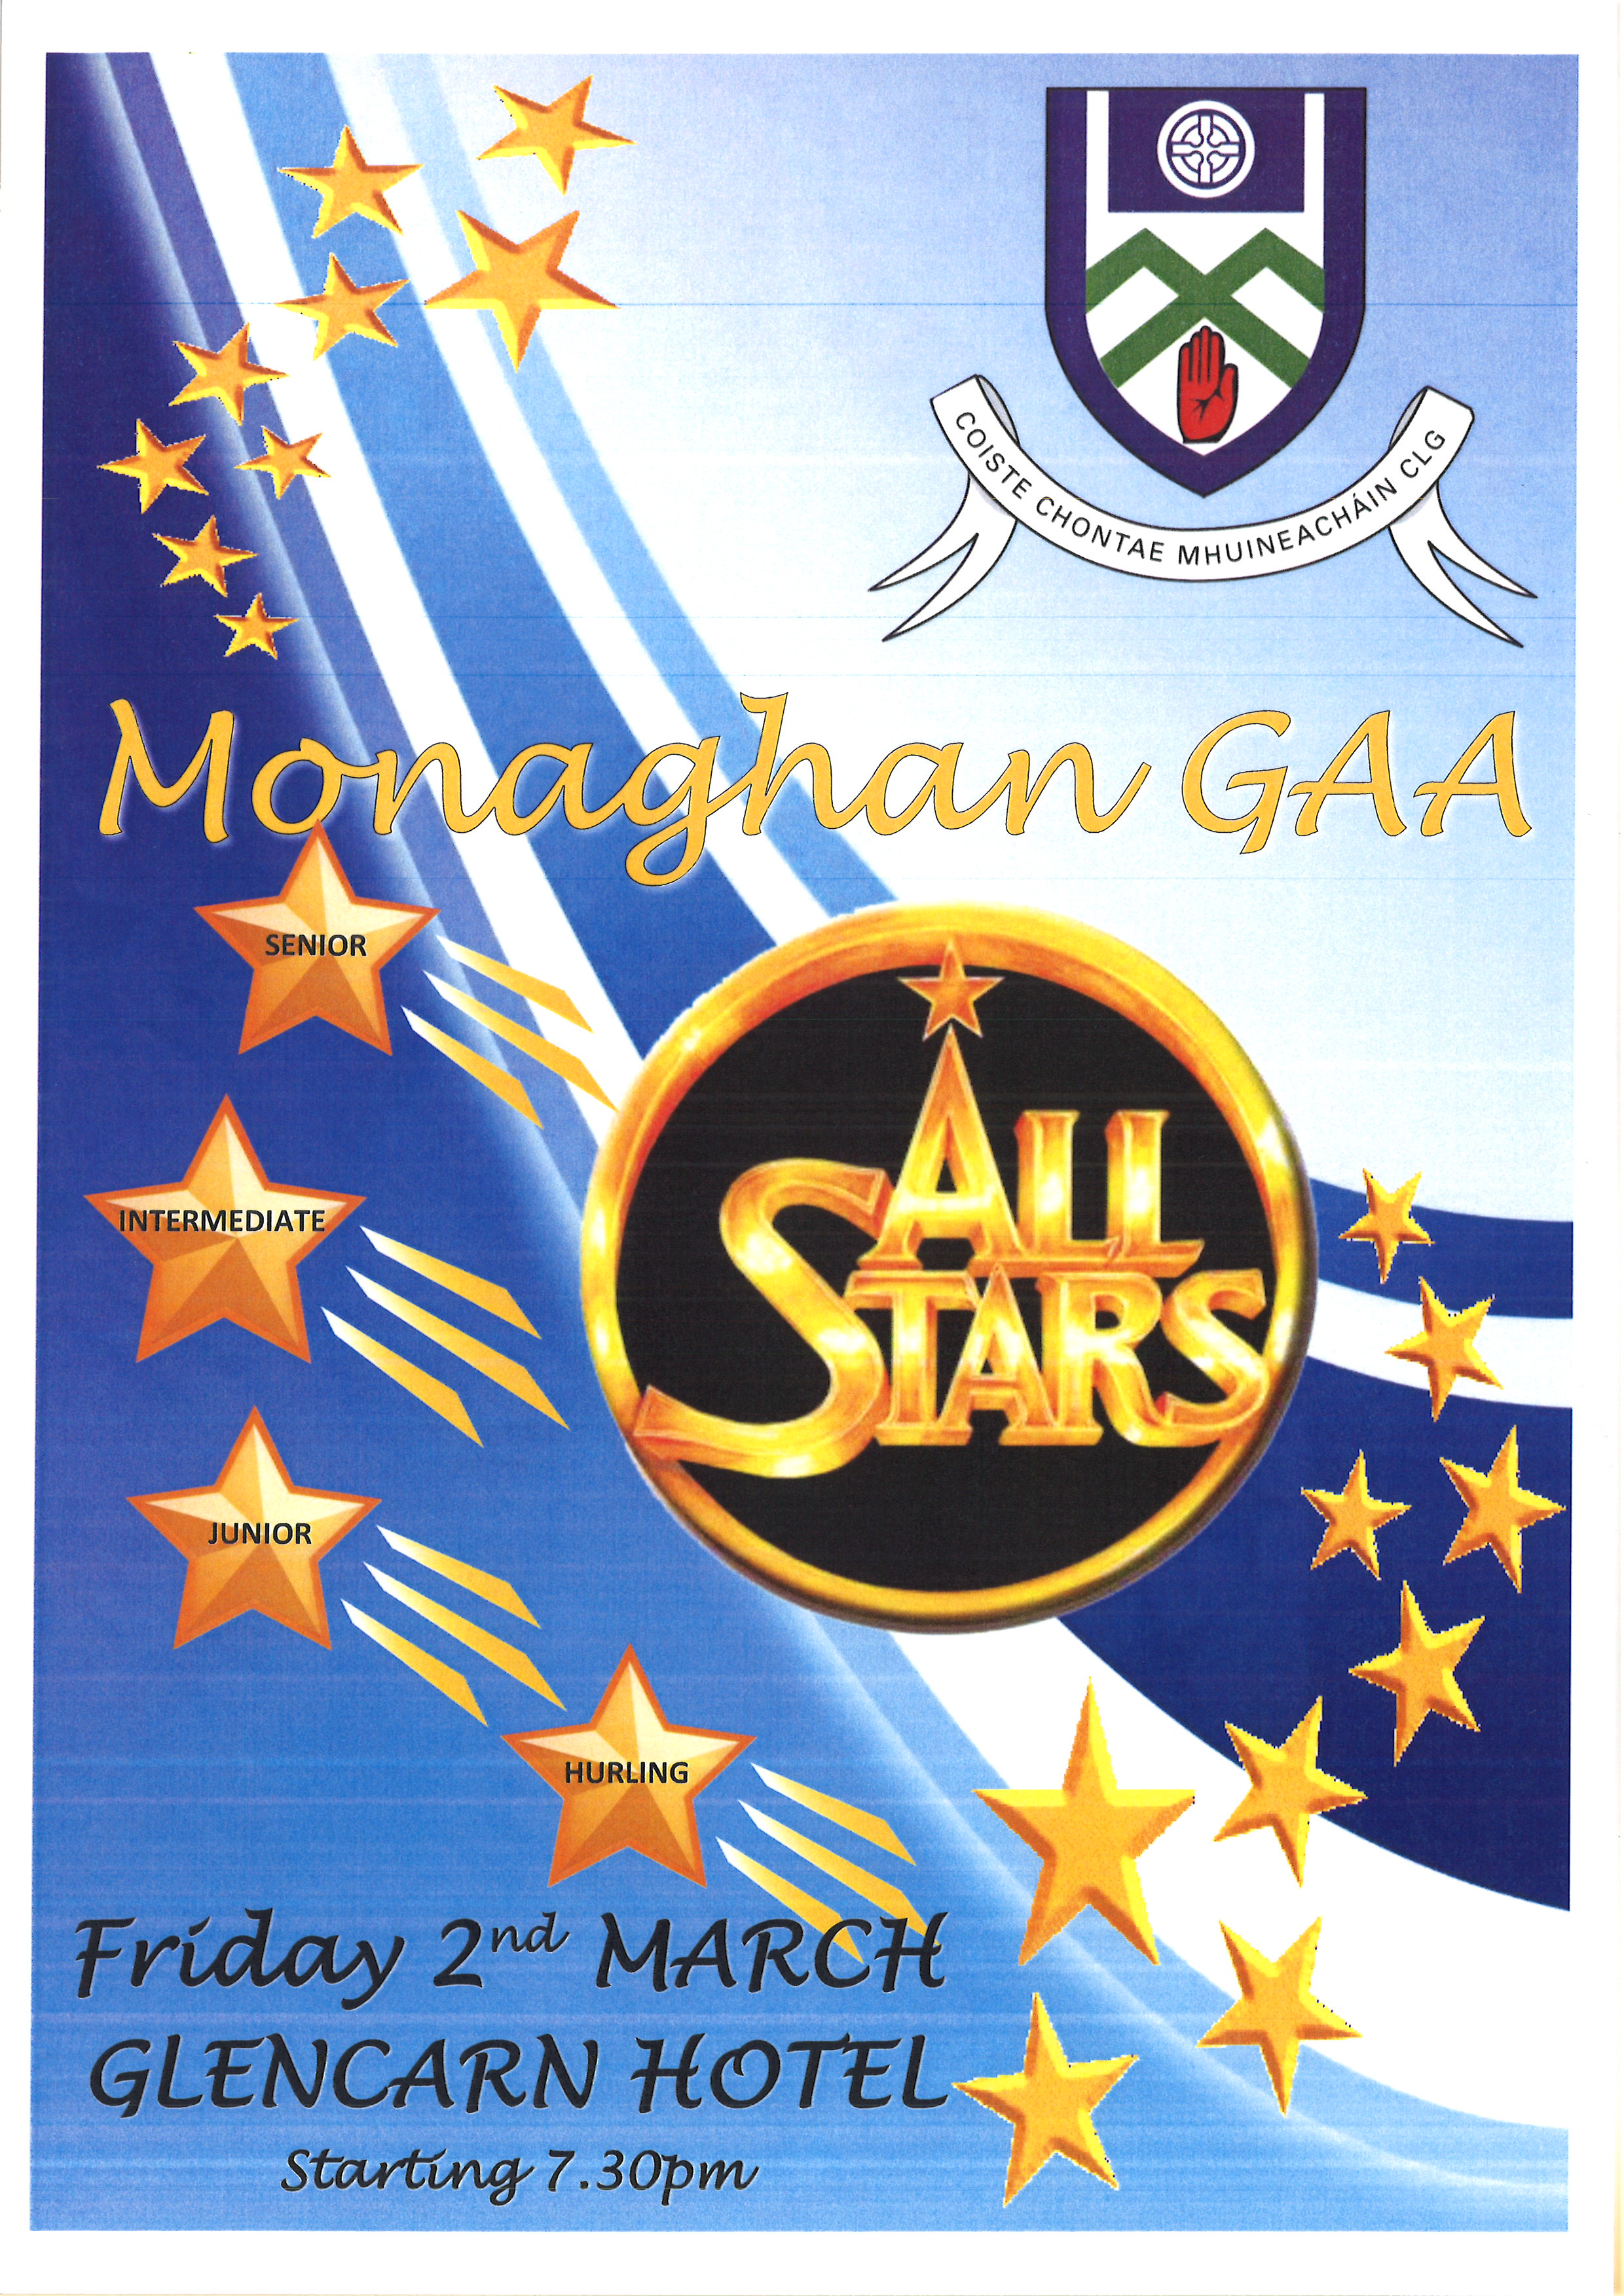 2017 Club All Stars Friday March 2nd